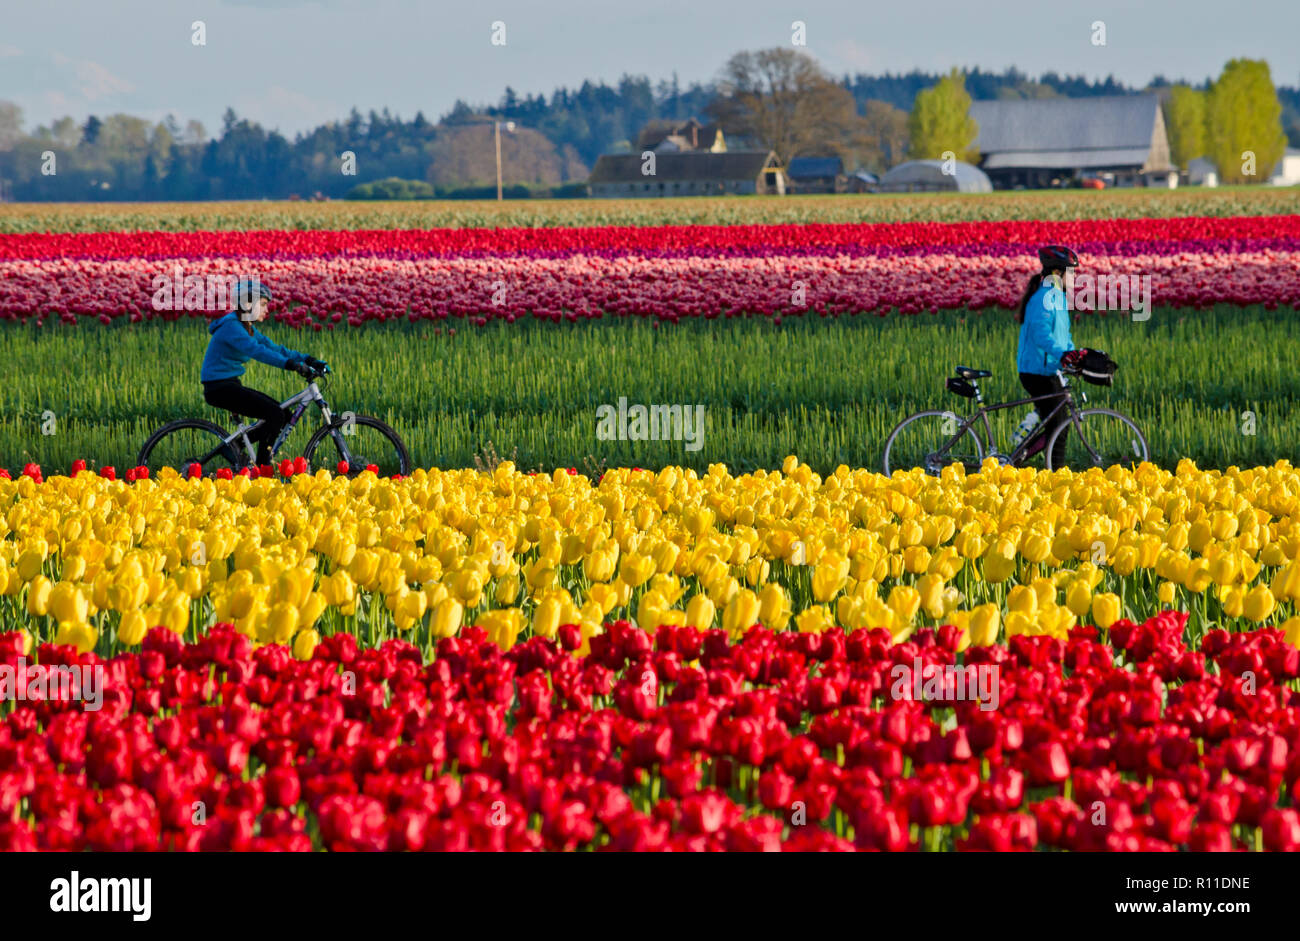 cyclists-riding-through-the-tulip-fields